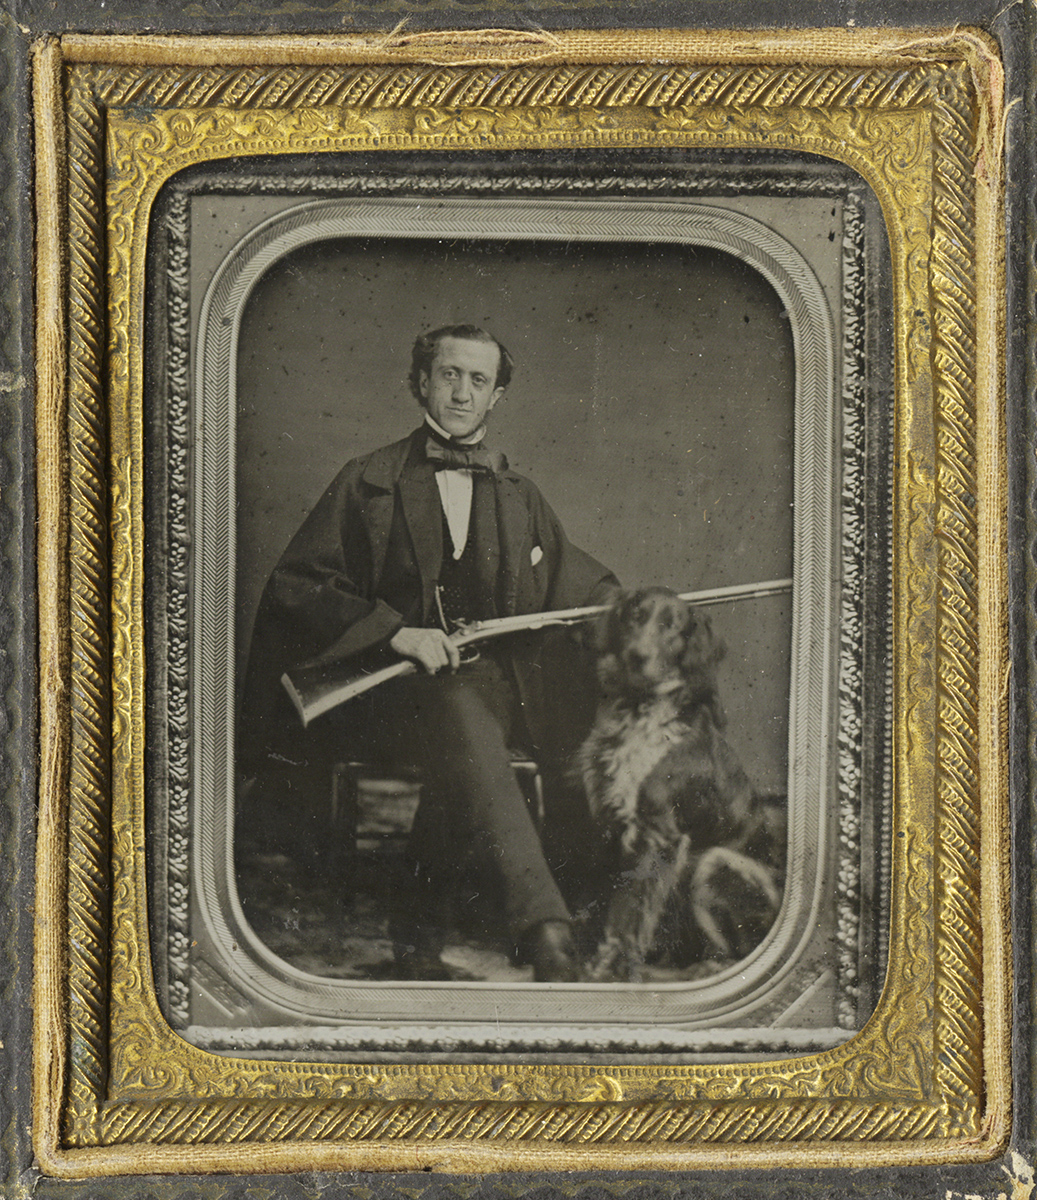 Man Holding A Rifle Seated Next to His Dog